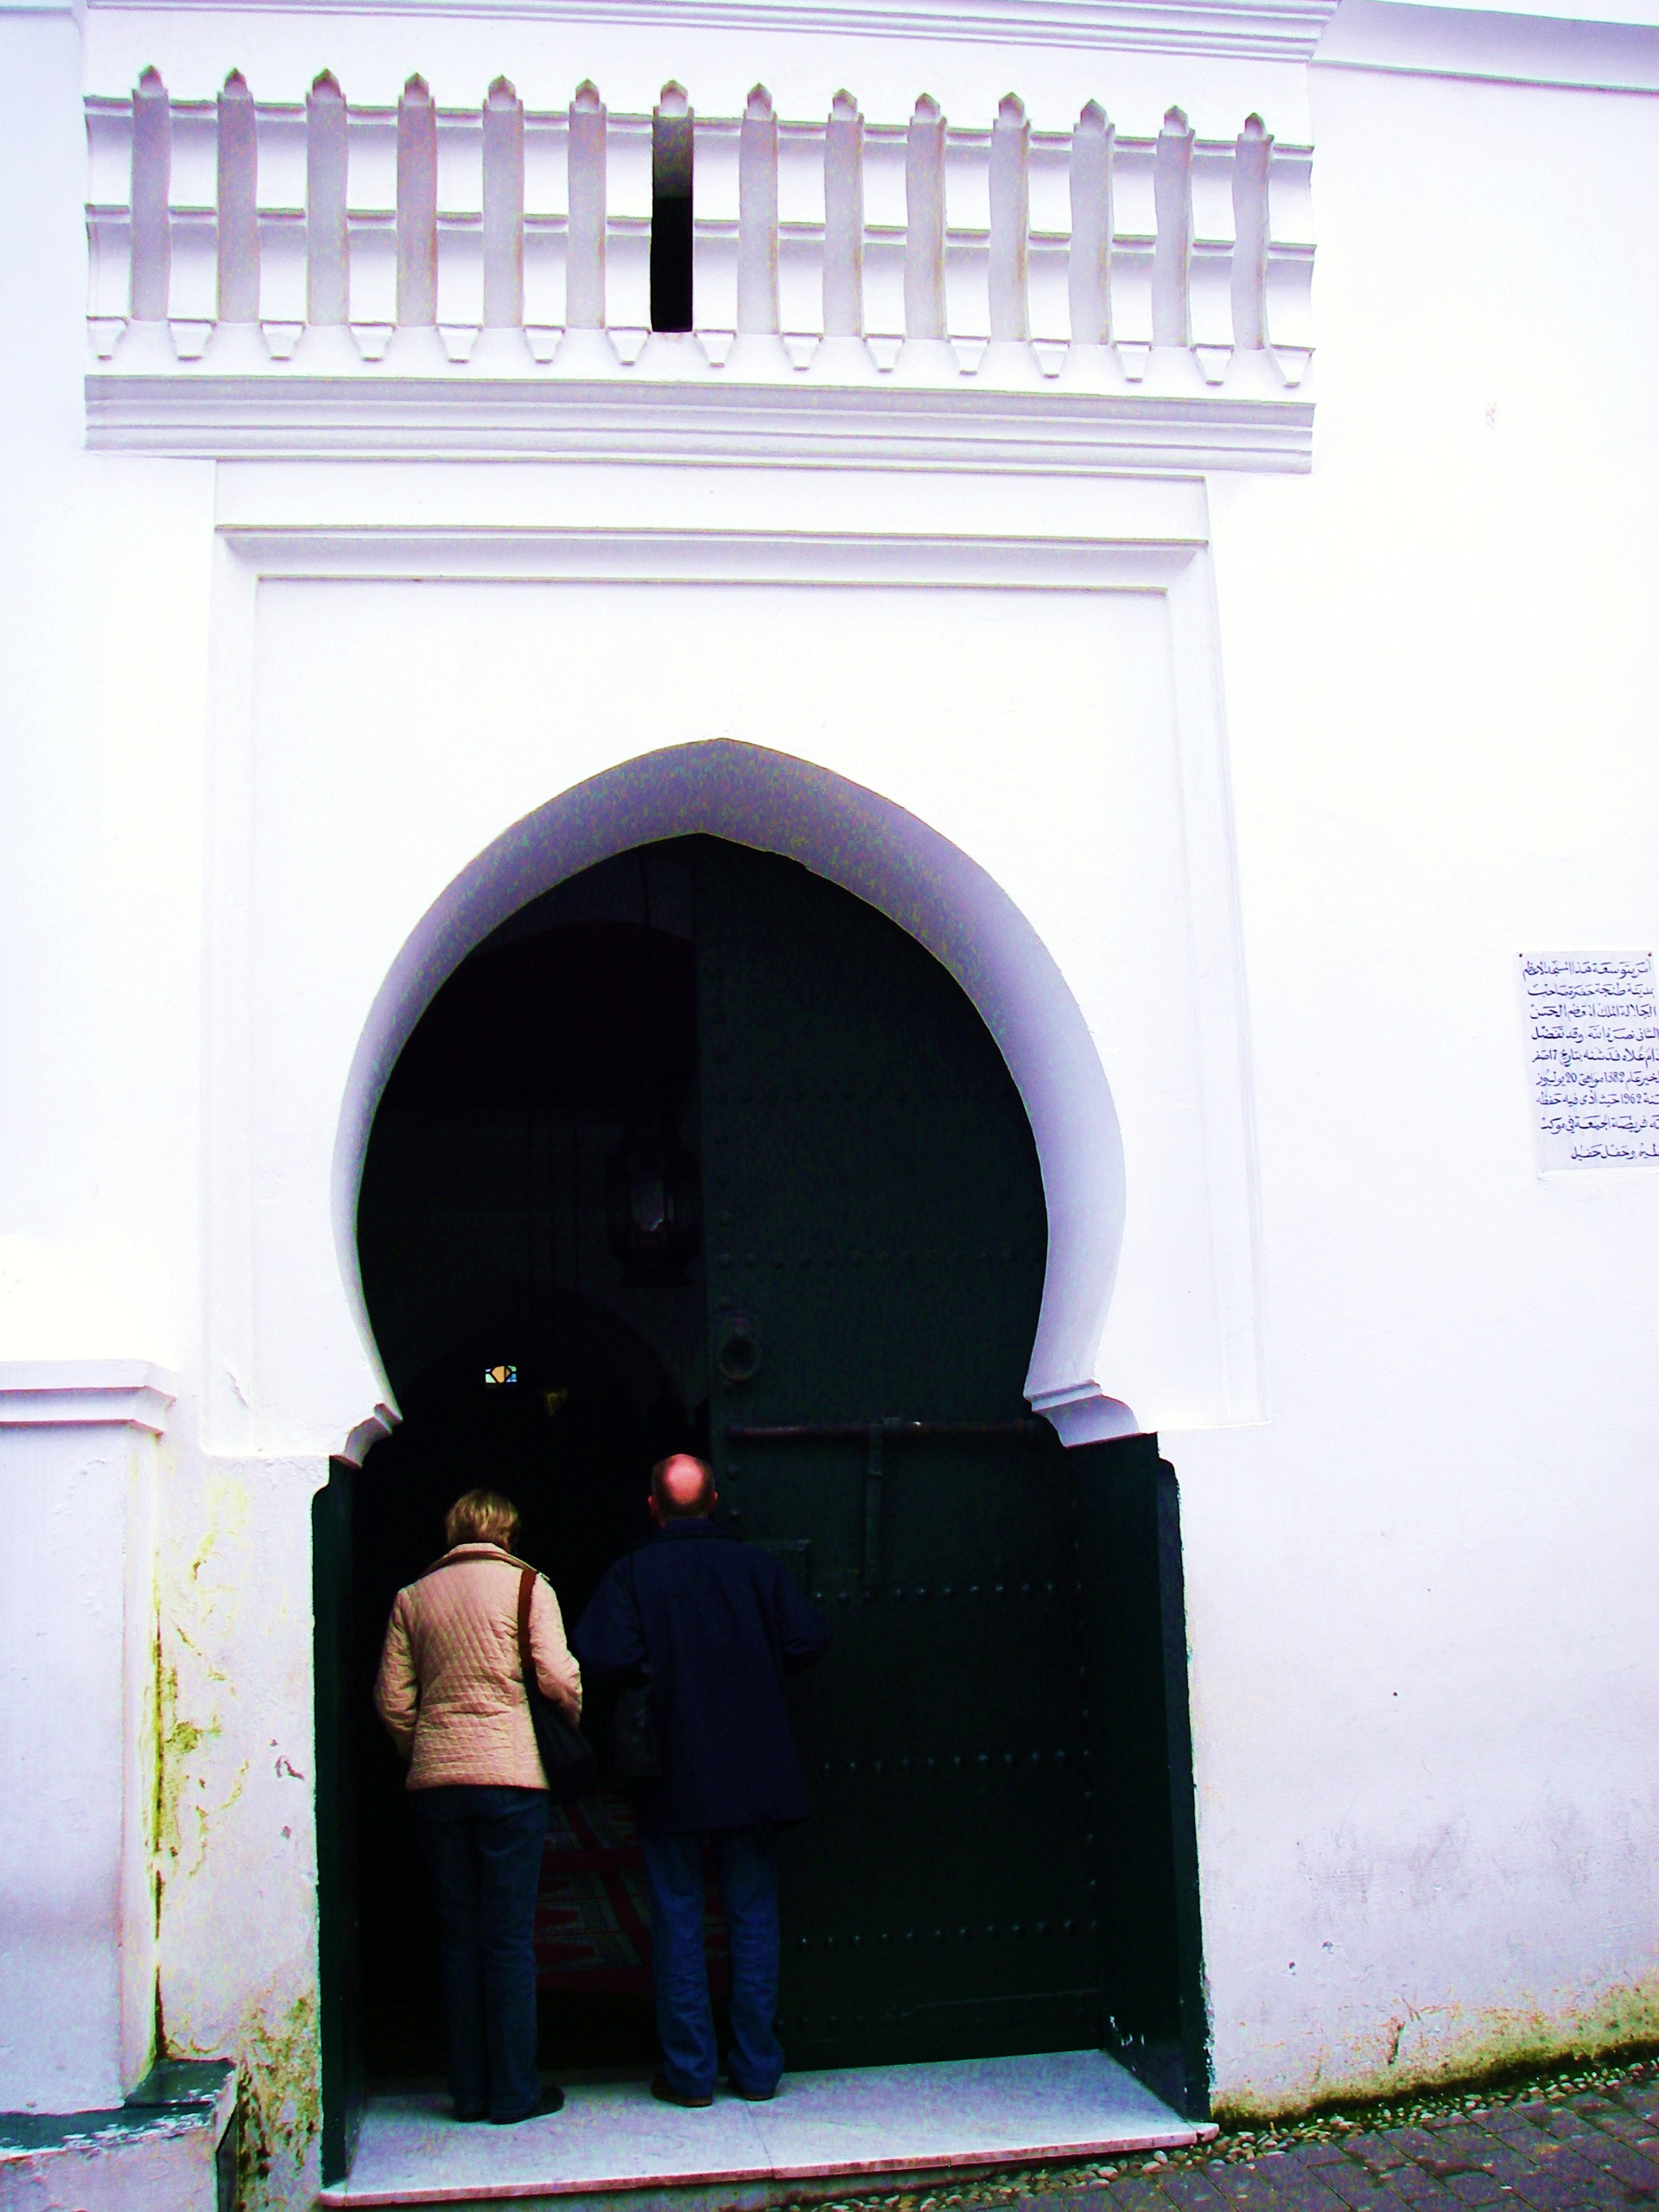 Door No. 8, Tourists